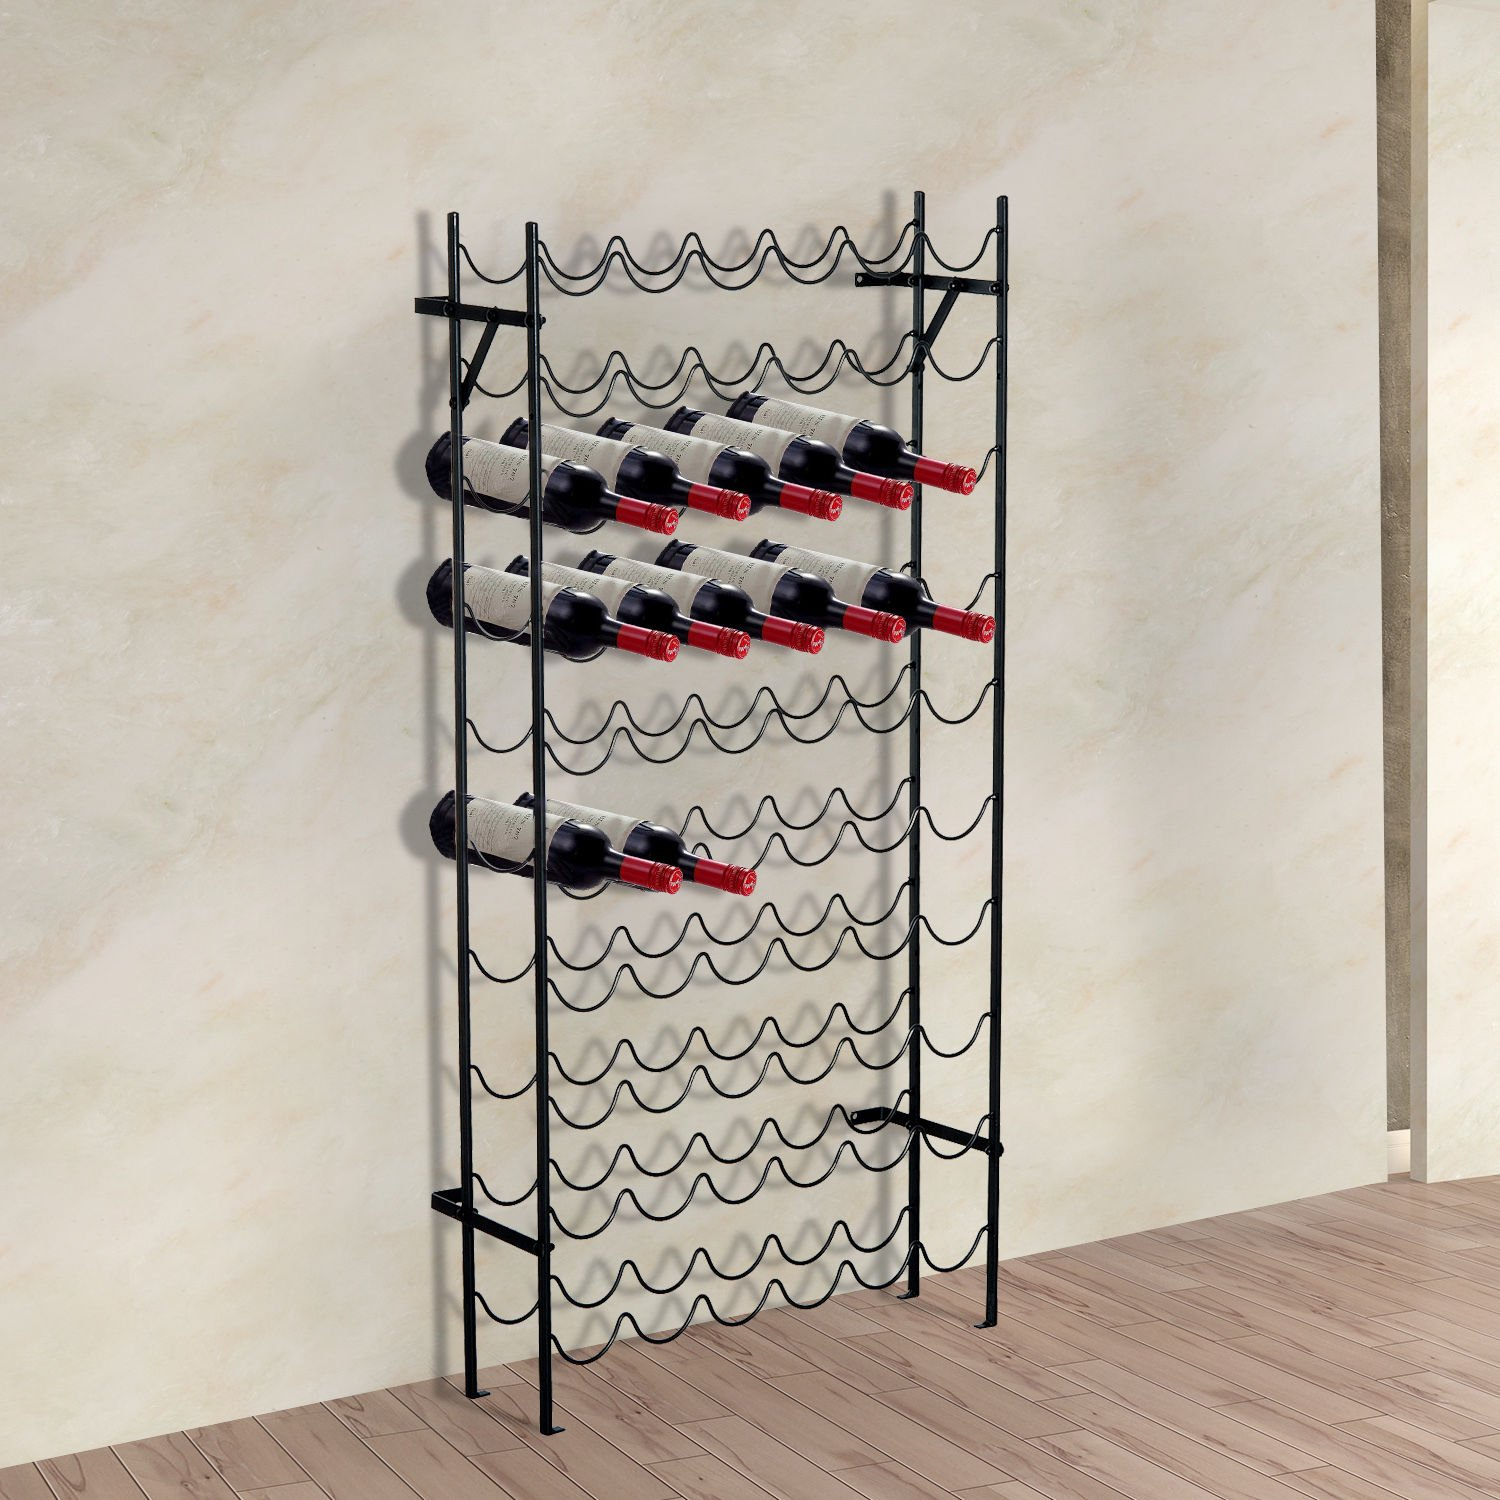 Generic DYHP-A10-CODE-4424-CLASS-8-- Bar Storage Home Home 10-Tier 60-Bottle Floor ack Dis Metal Wine e Flo Rack Display r 60-Bo --NV_1008004424-CXL-US10